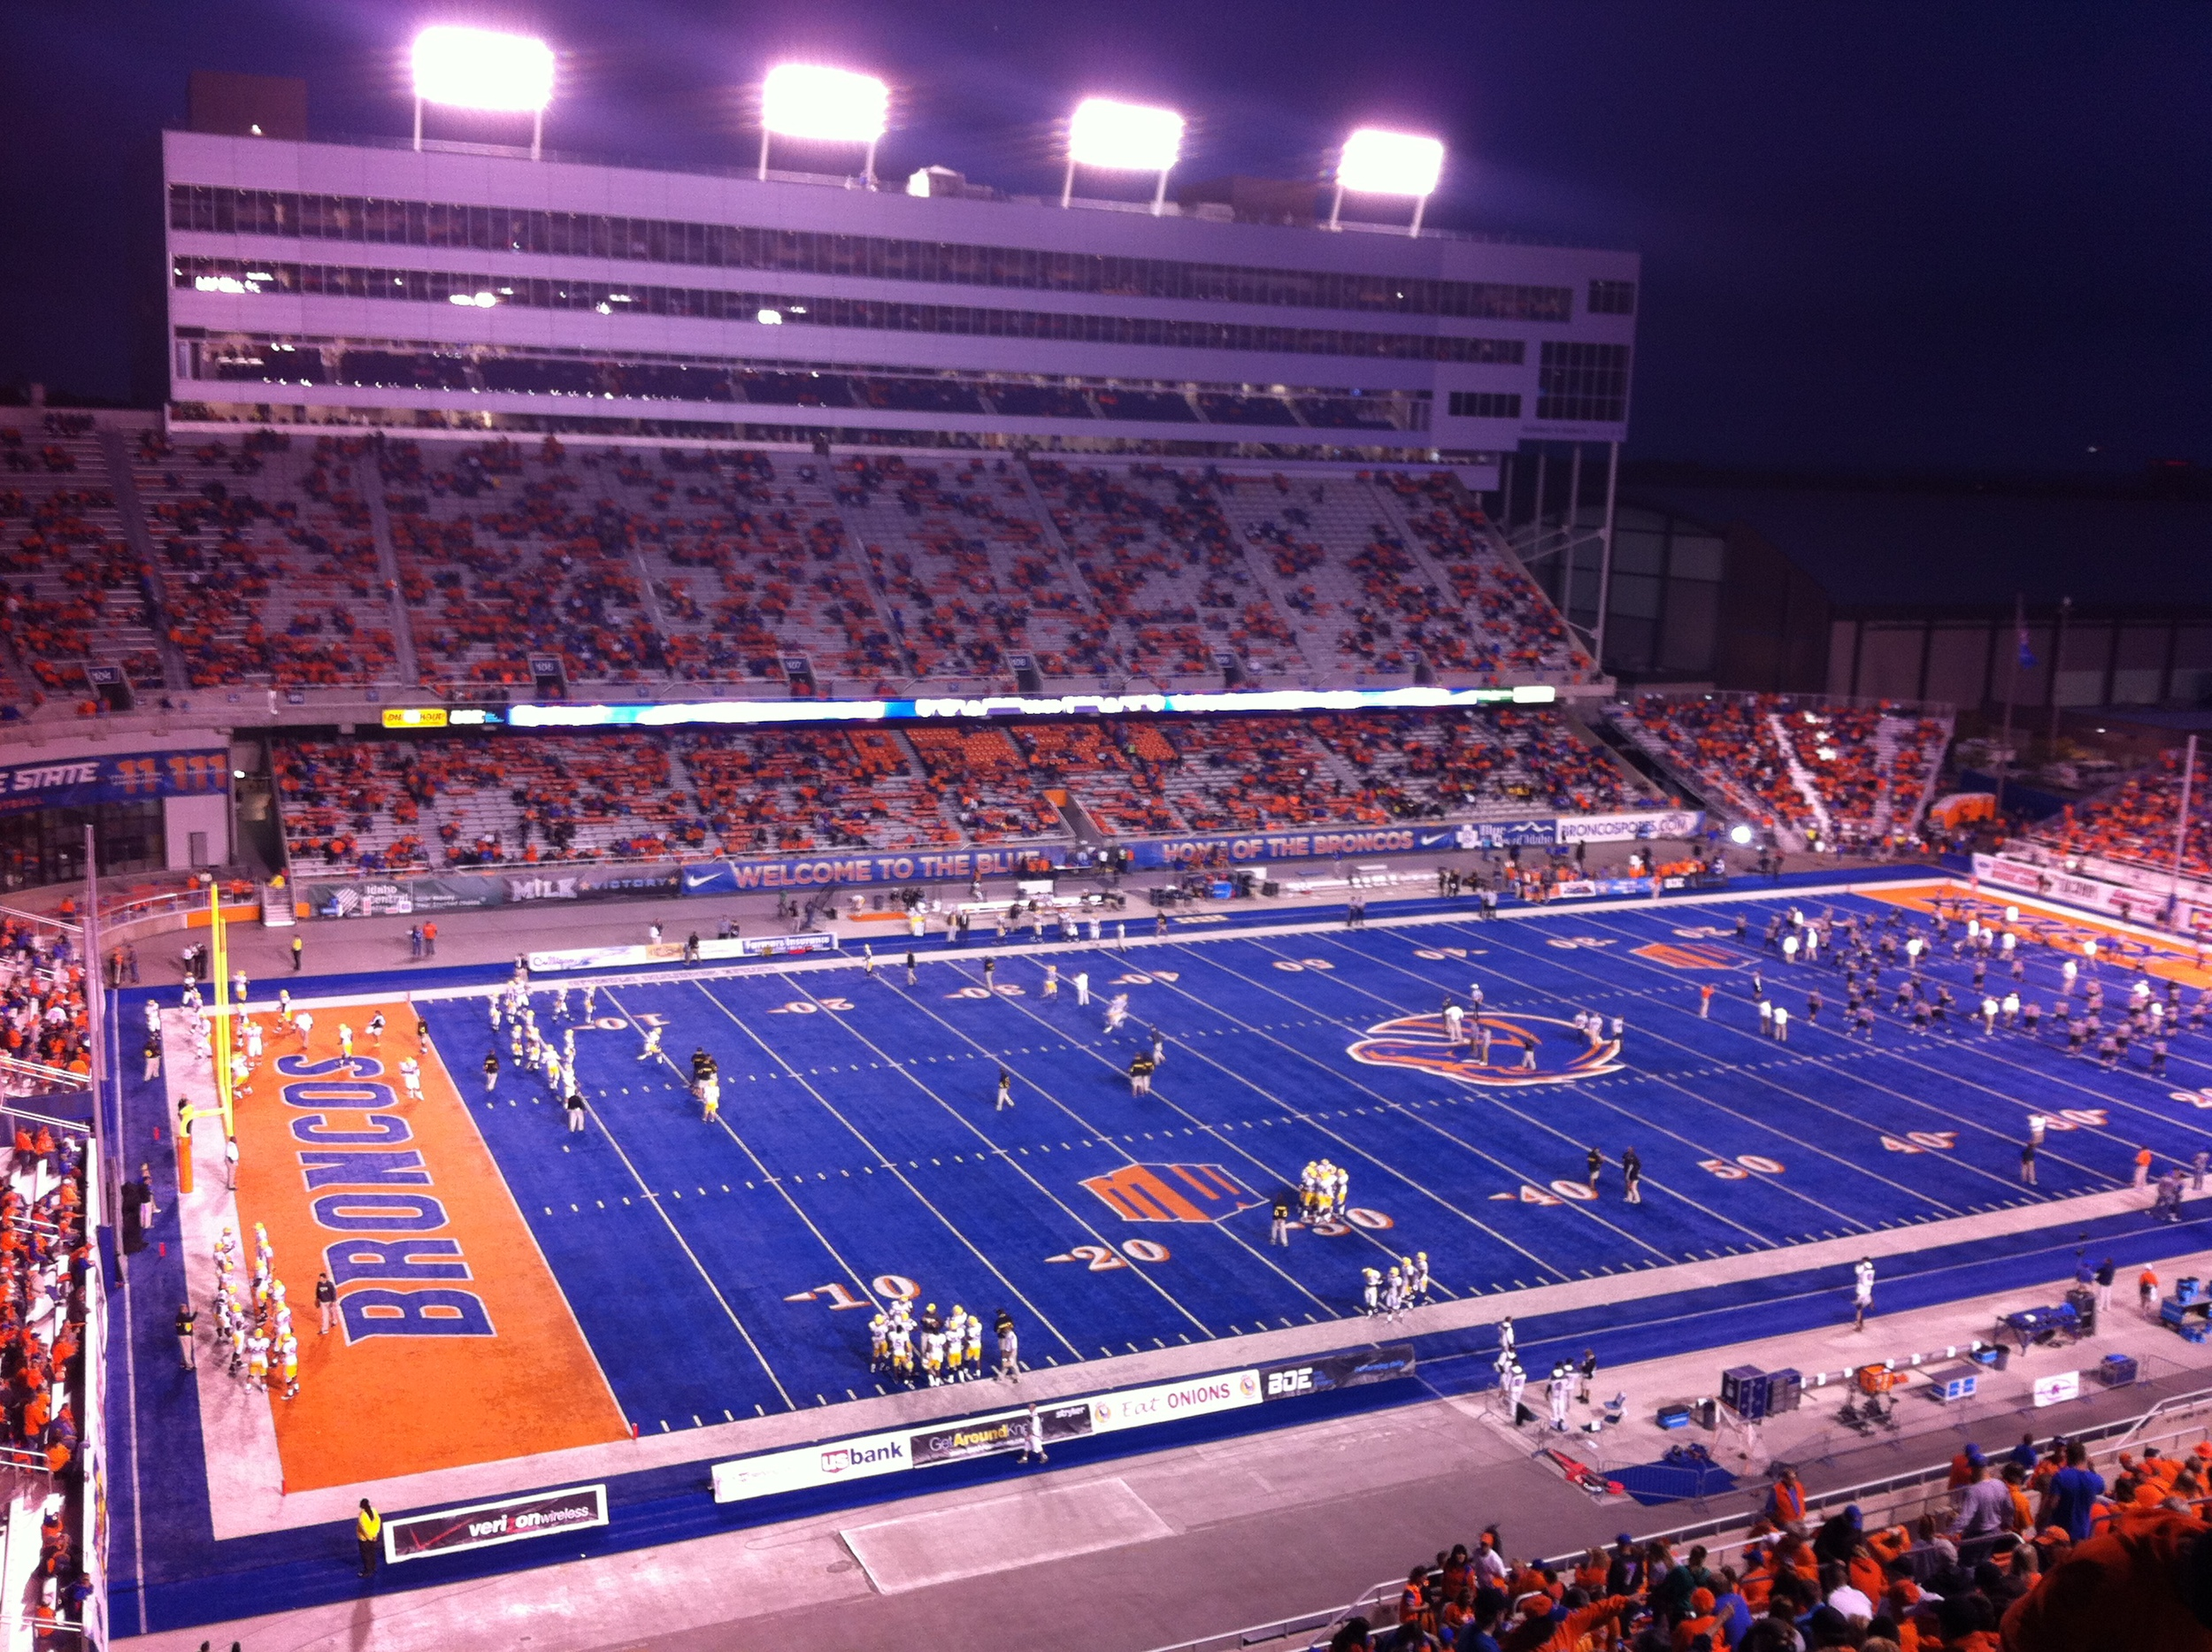 Broncos stadium before the game. It is the only football field with blue turf.